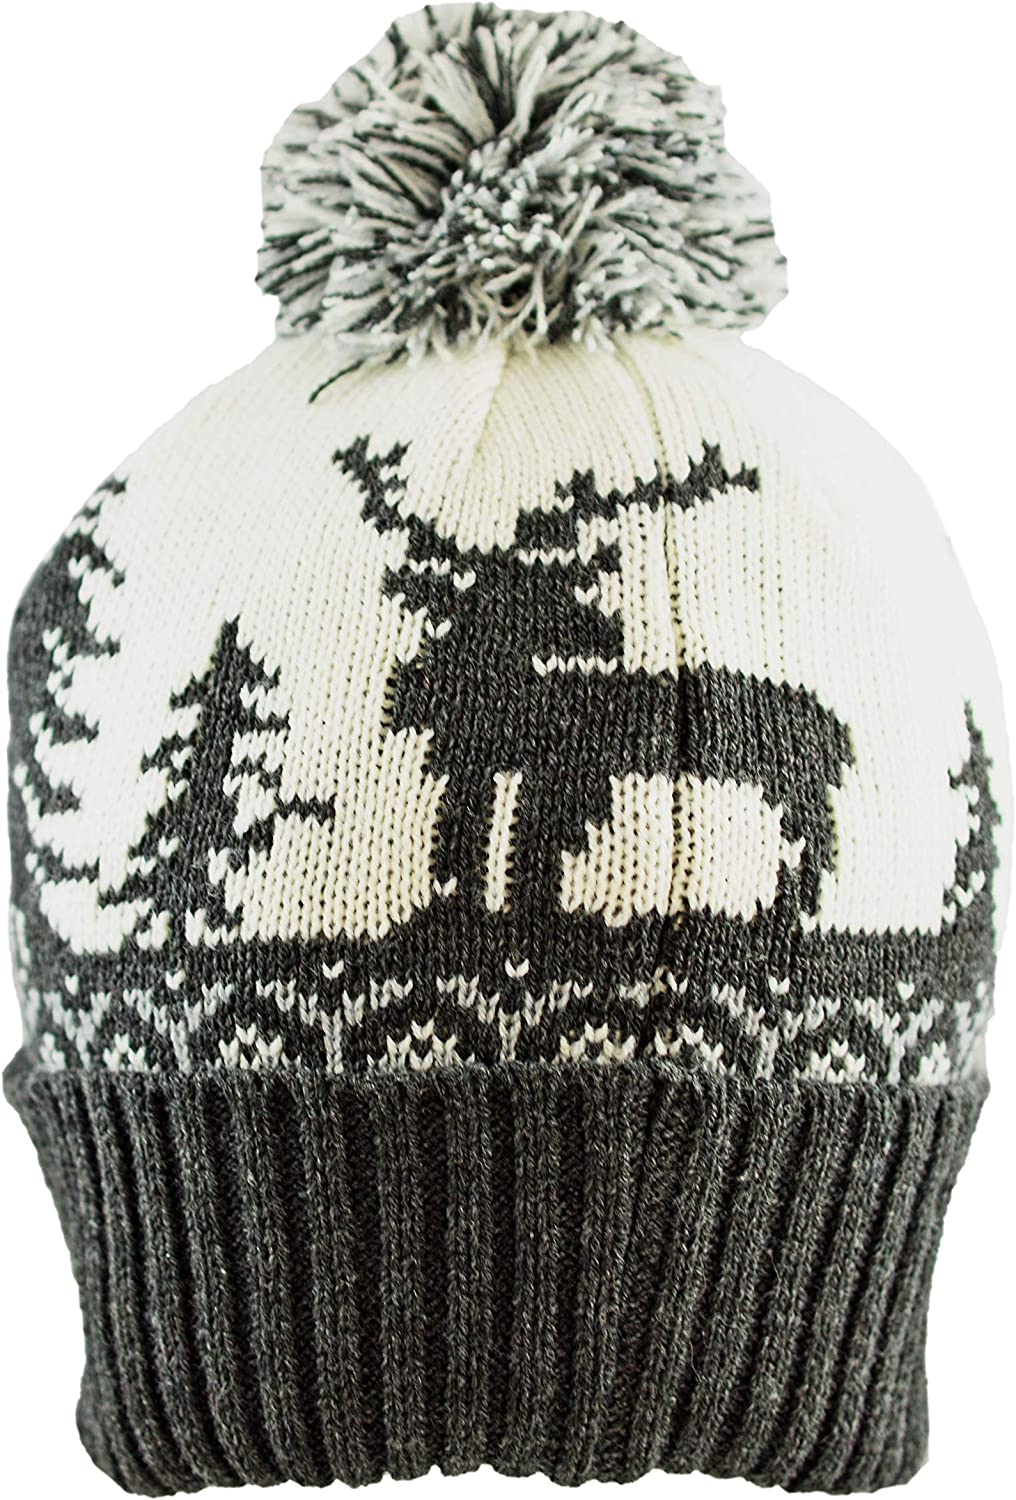 Pesci Kids Pom Pom Hat Boys Bobble Beanie Caps Winter Wooly Knitted Alpine Reindeer